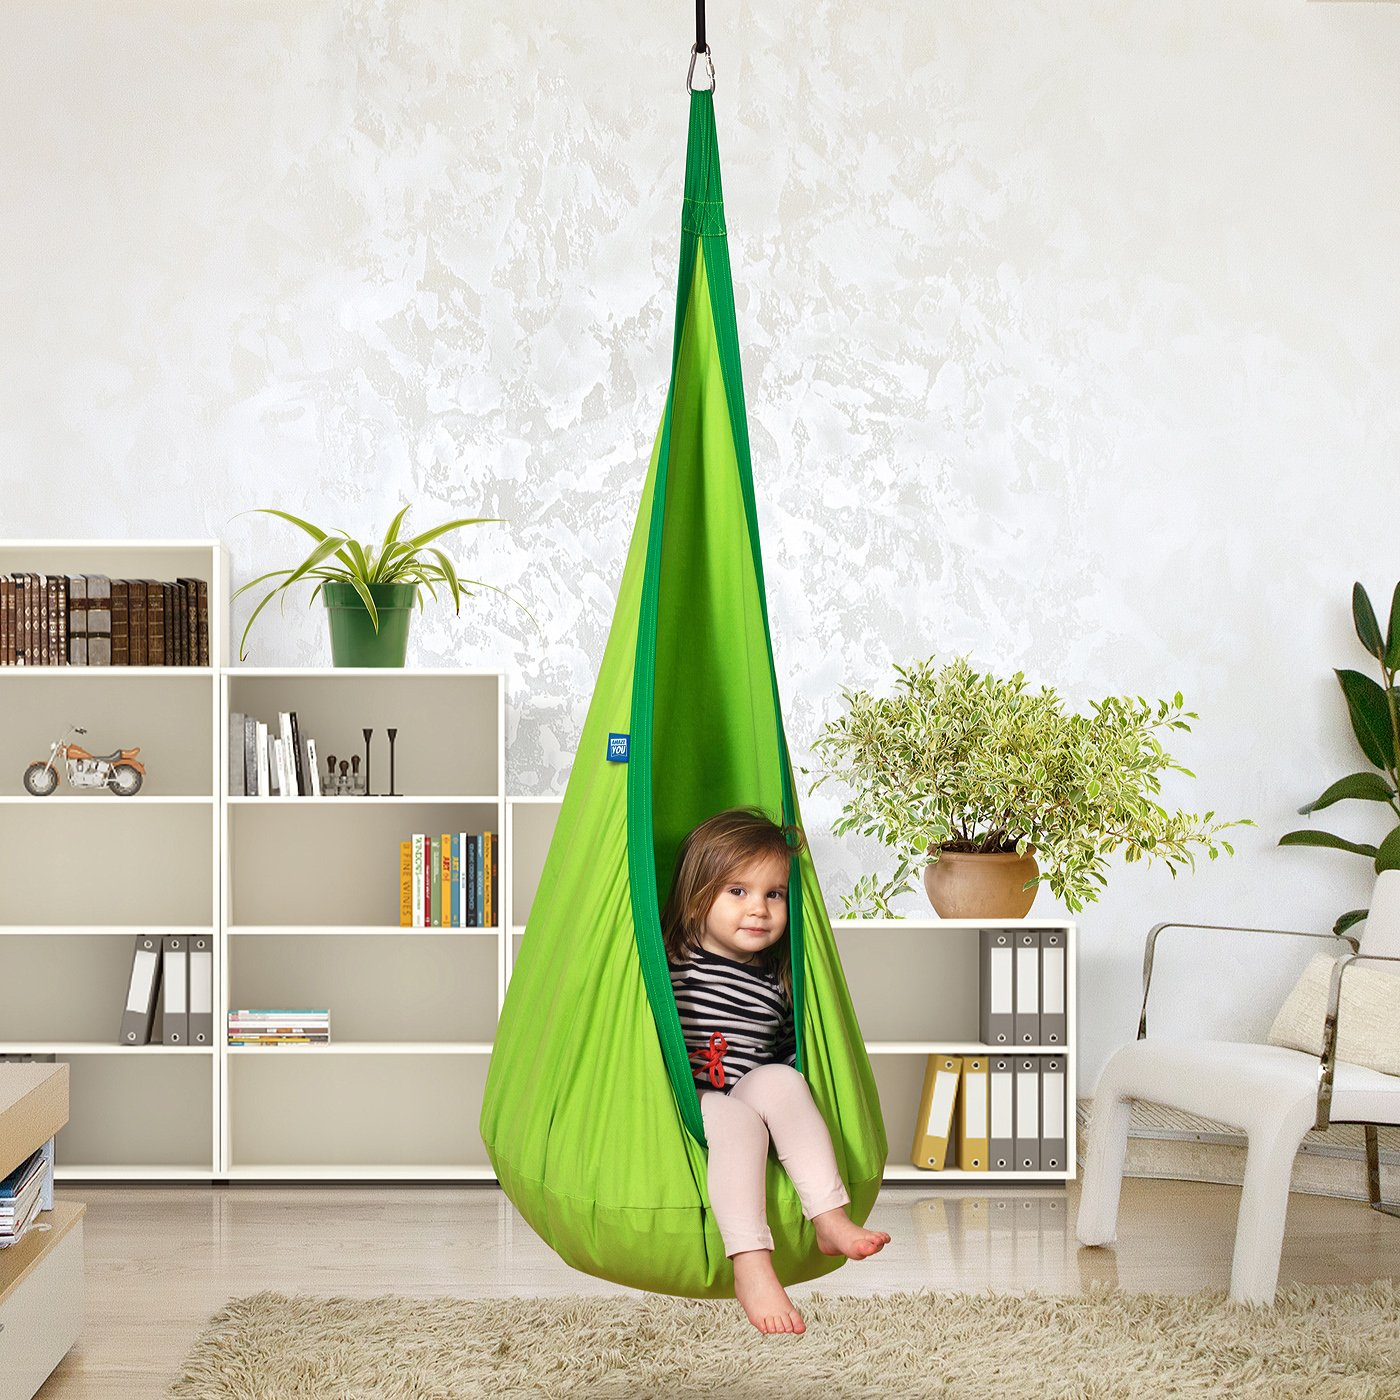 Childs Rope Hanging Sensory Seat Nest for Indoor and Outdoor Use with Inflatable Pillow AMAZEYOU Kids Swing Hammock Pod Chair Great for Children All Accessories Included Nook Green